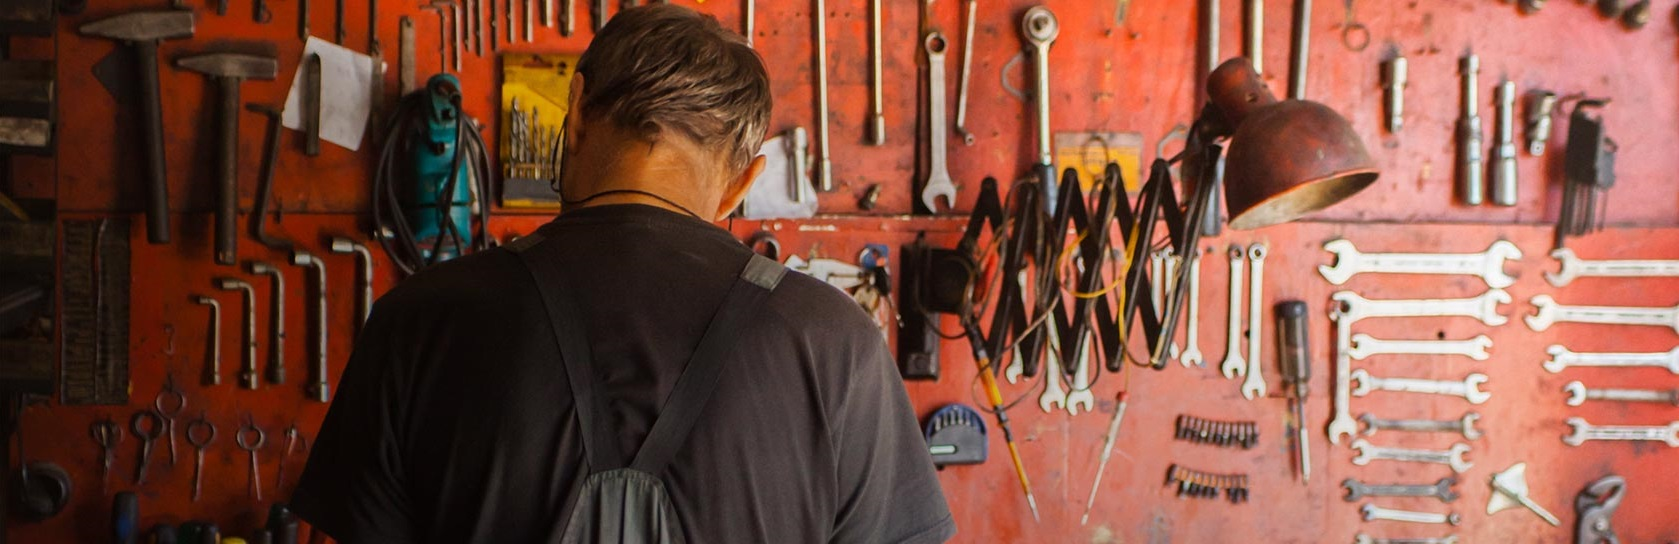 Man-With-Tools.jpg